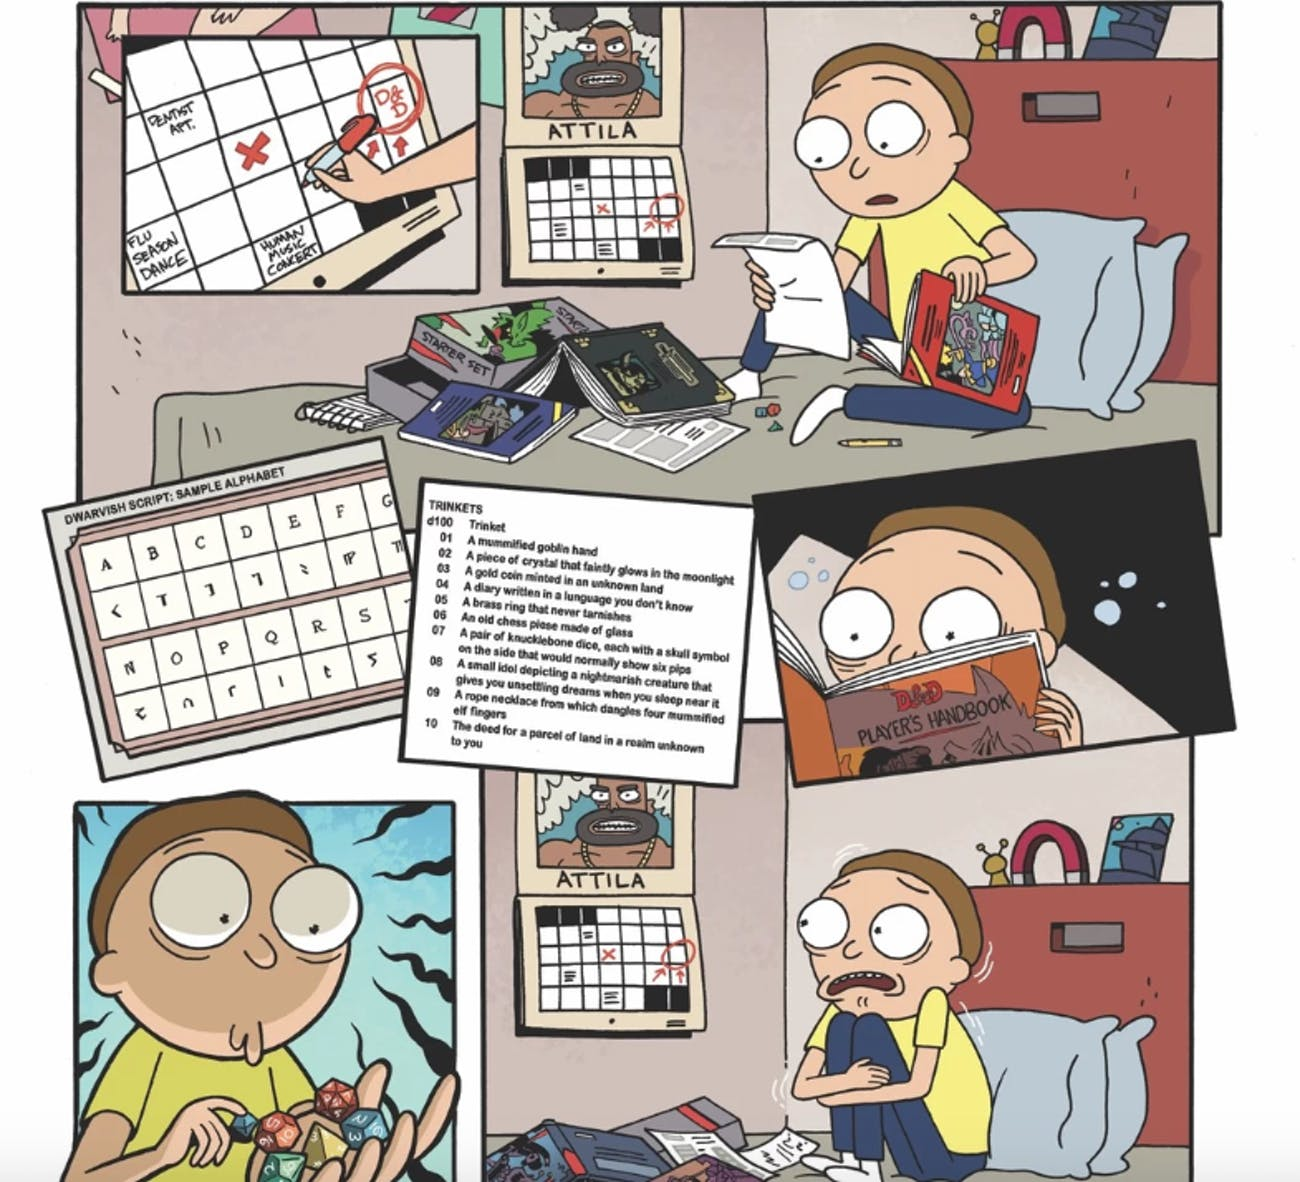 'Rick and Morty vs. Dungeons & Dragons'